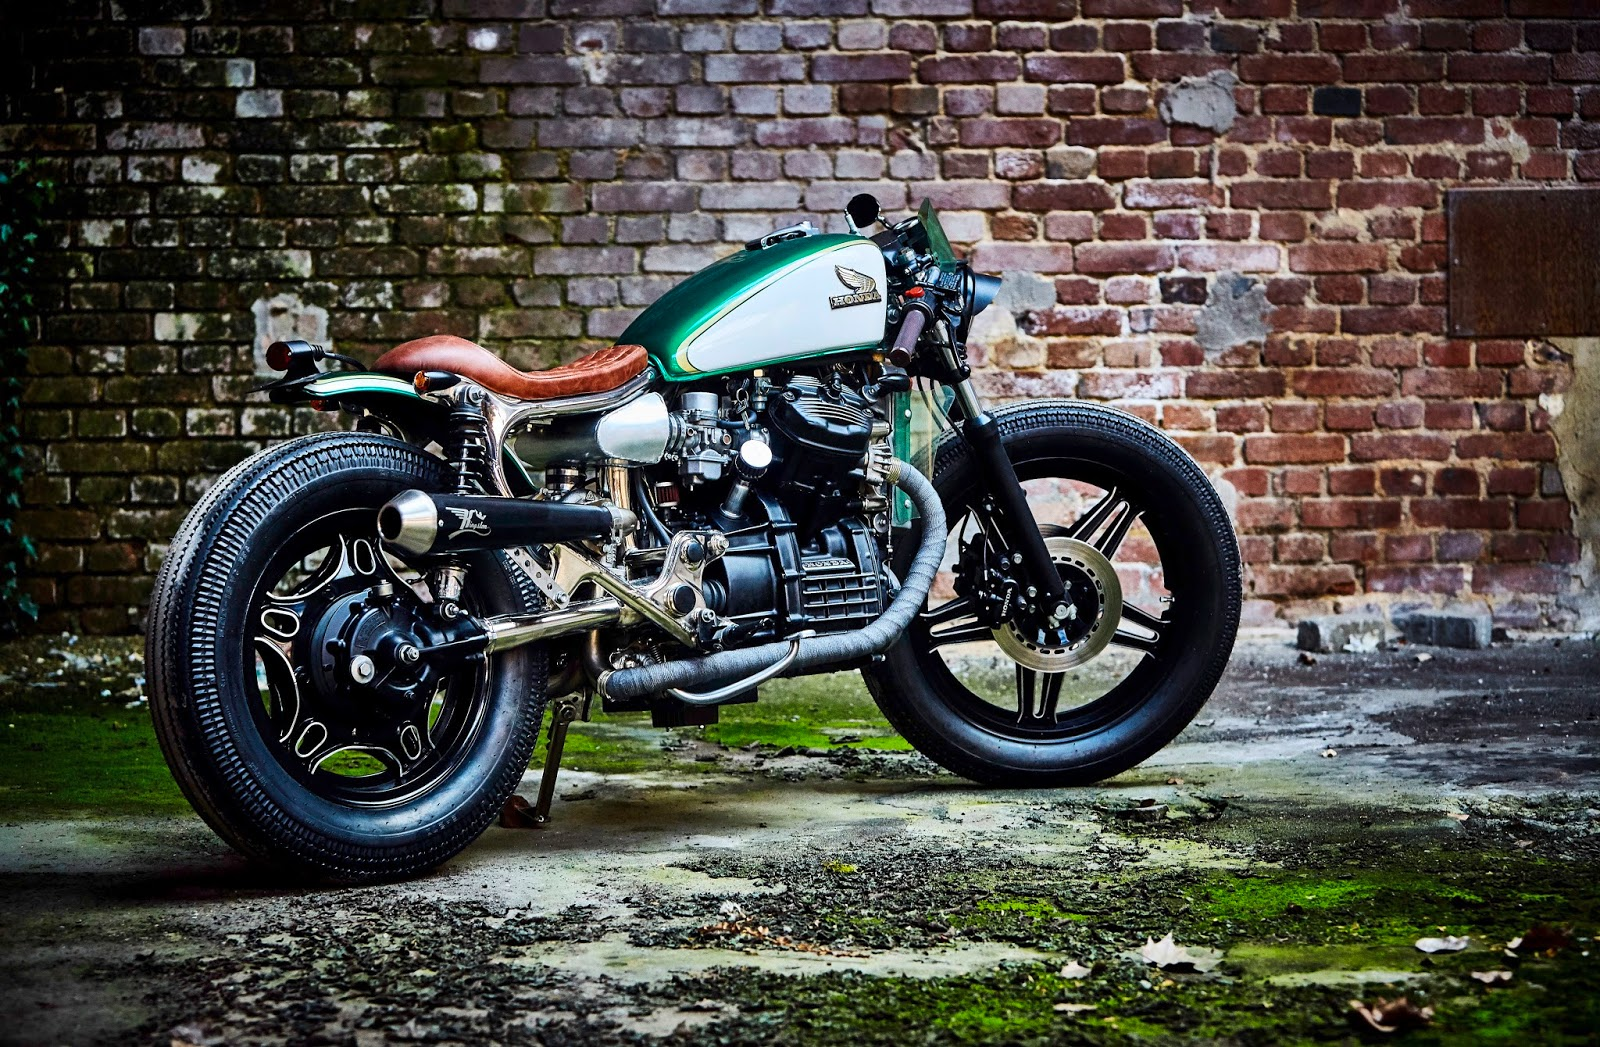 CX500 Turbo from Kingston Customs